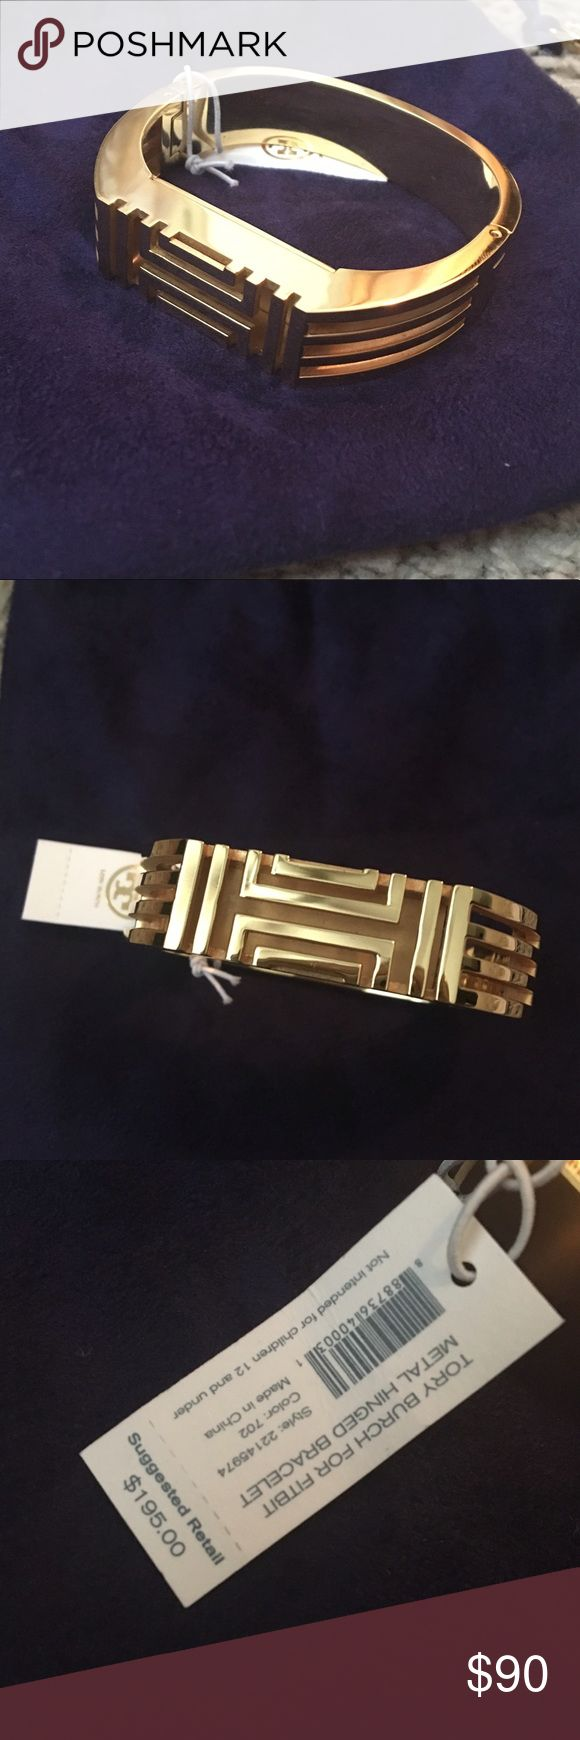 NWT Tory Burch Gold Bangle Fitbit Bracelet AUTHENTIC Tory Burch gold Fitbit bangle bracelet. NWT. Perfect for keeping up with your steps or alone for a cute Bracelet! Tory Burch Jewelry Bracelets